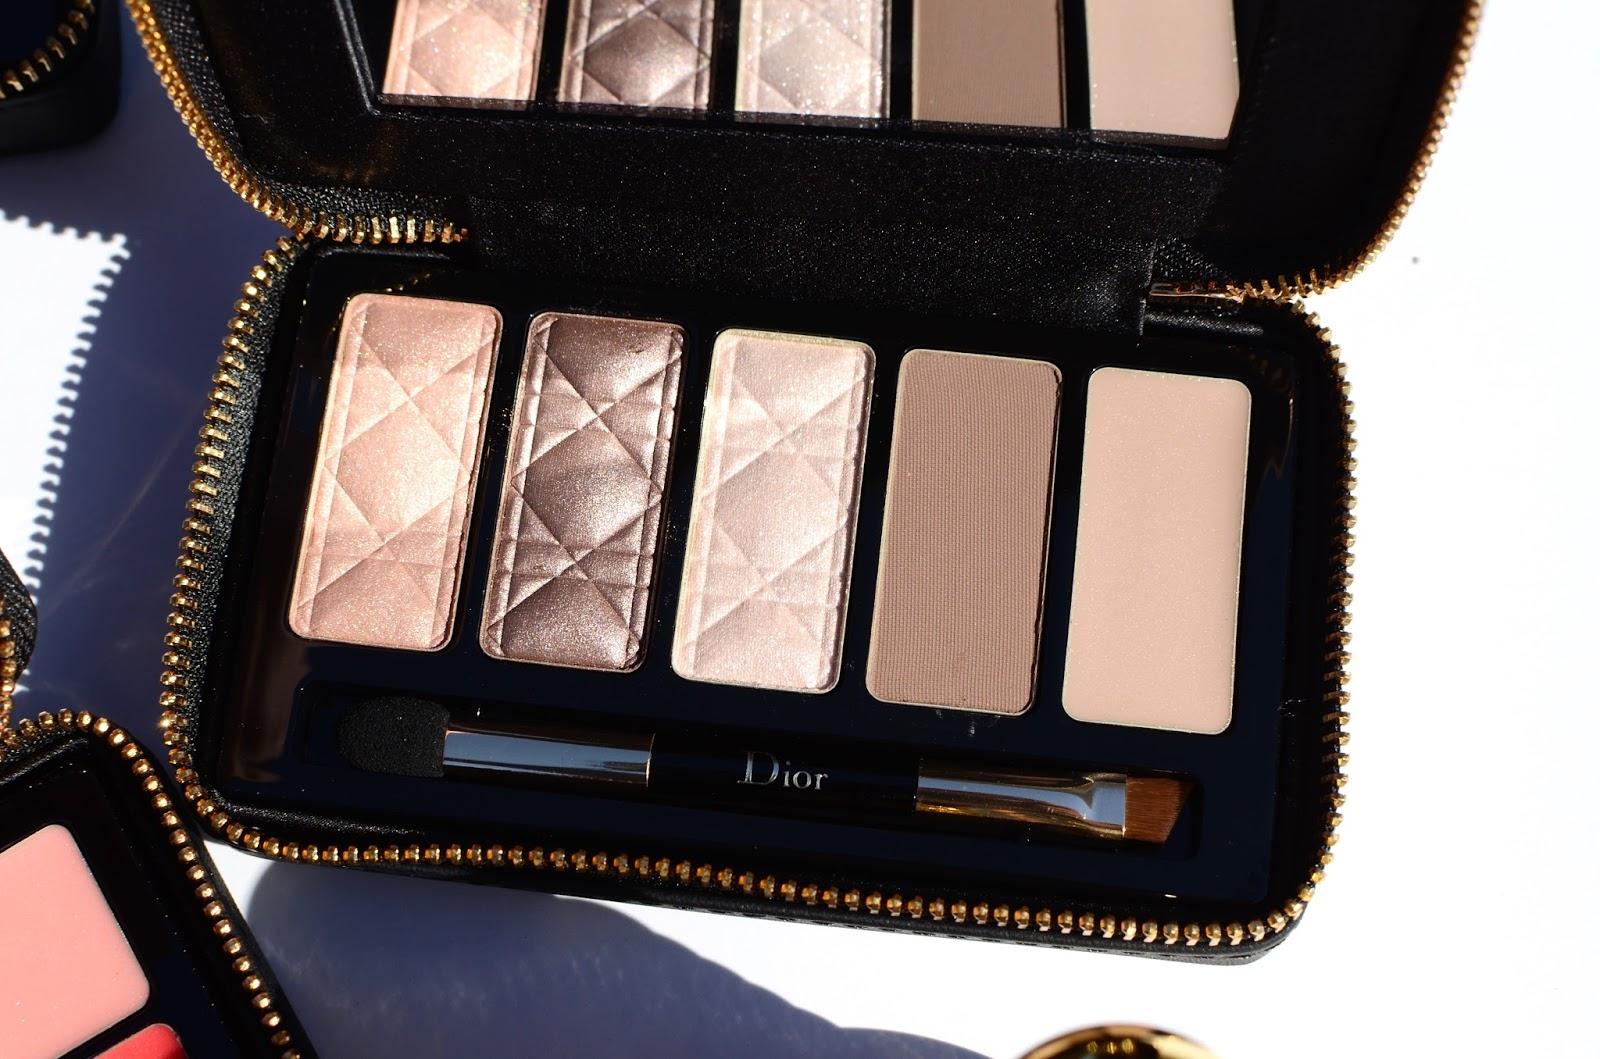 Couture Color Wardrobe Eye & Lip Palette by Dior #6